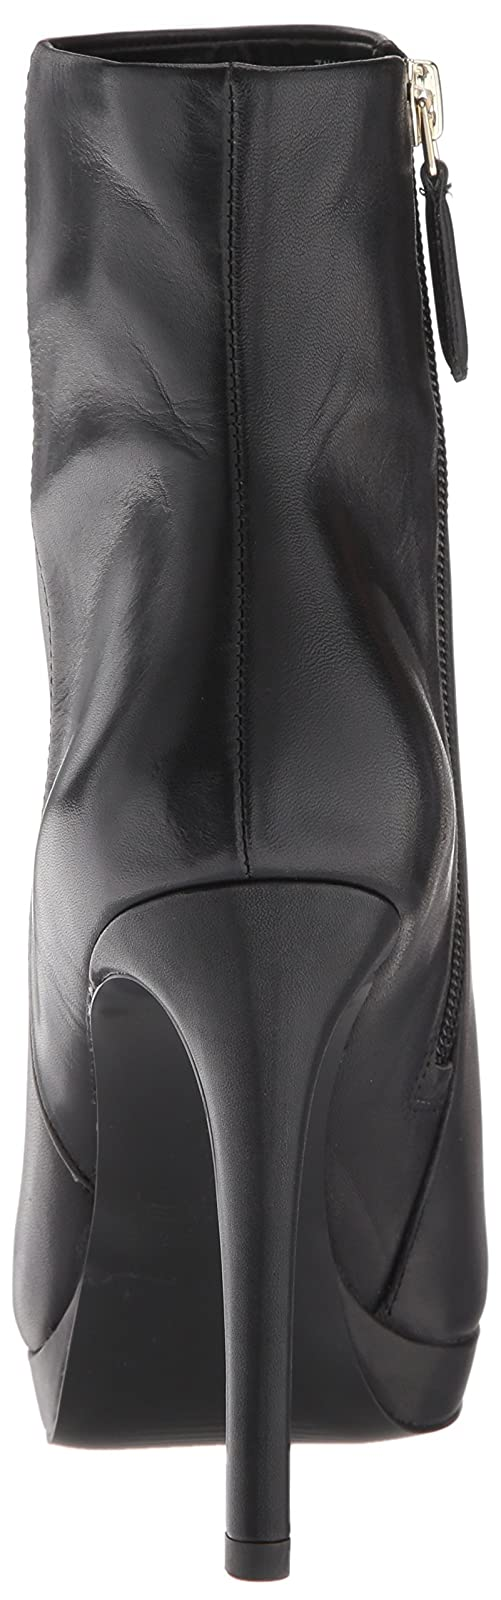 Nine West Women's Quanette Leather Ankle Boot 25033885 - 2